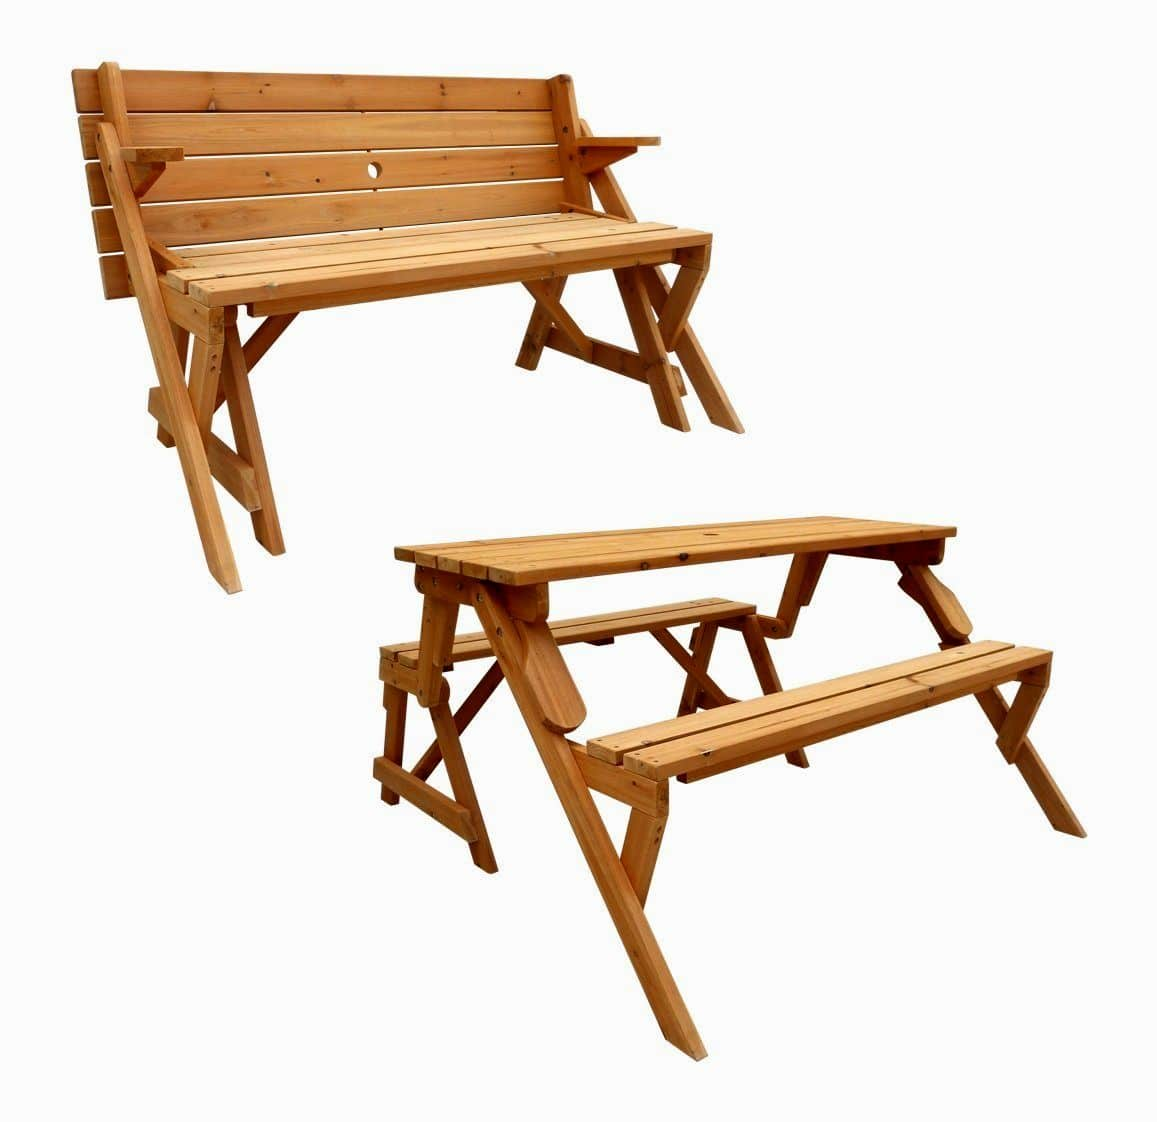 Wooden Picnic Tables And Benches